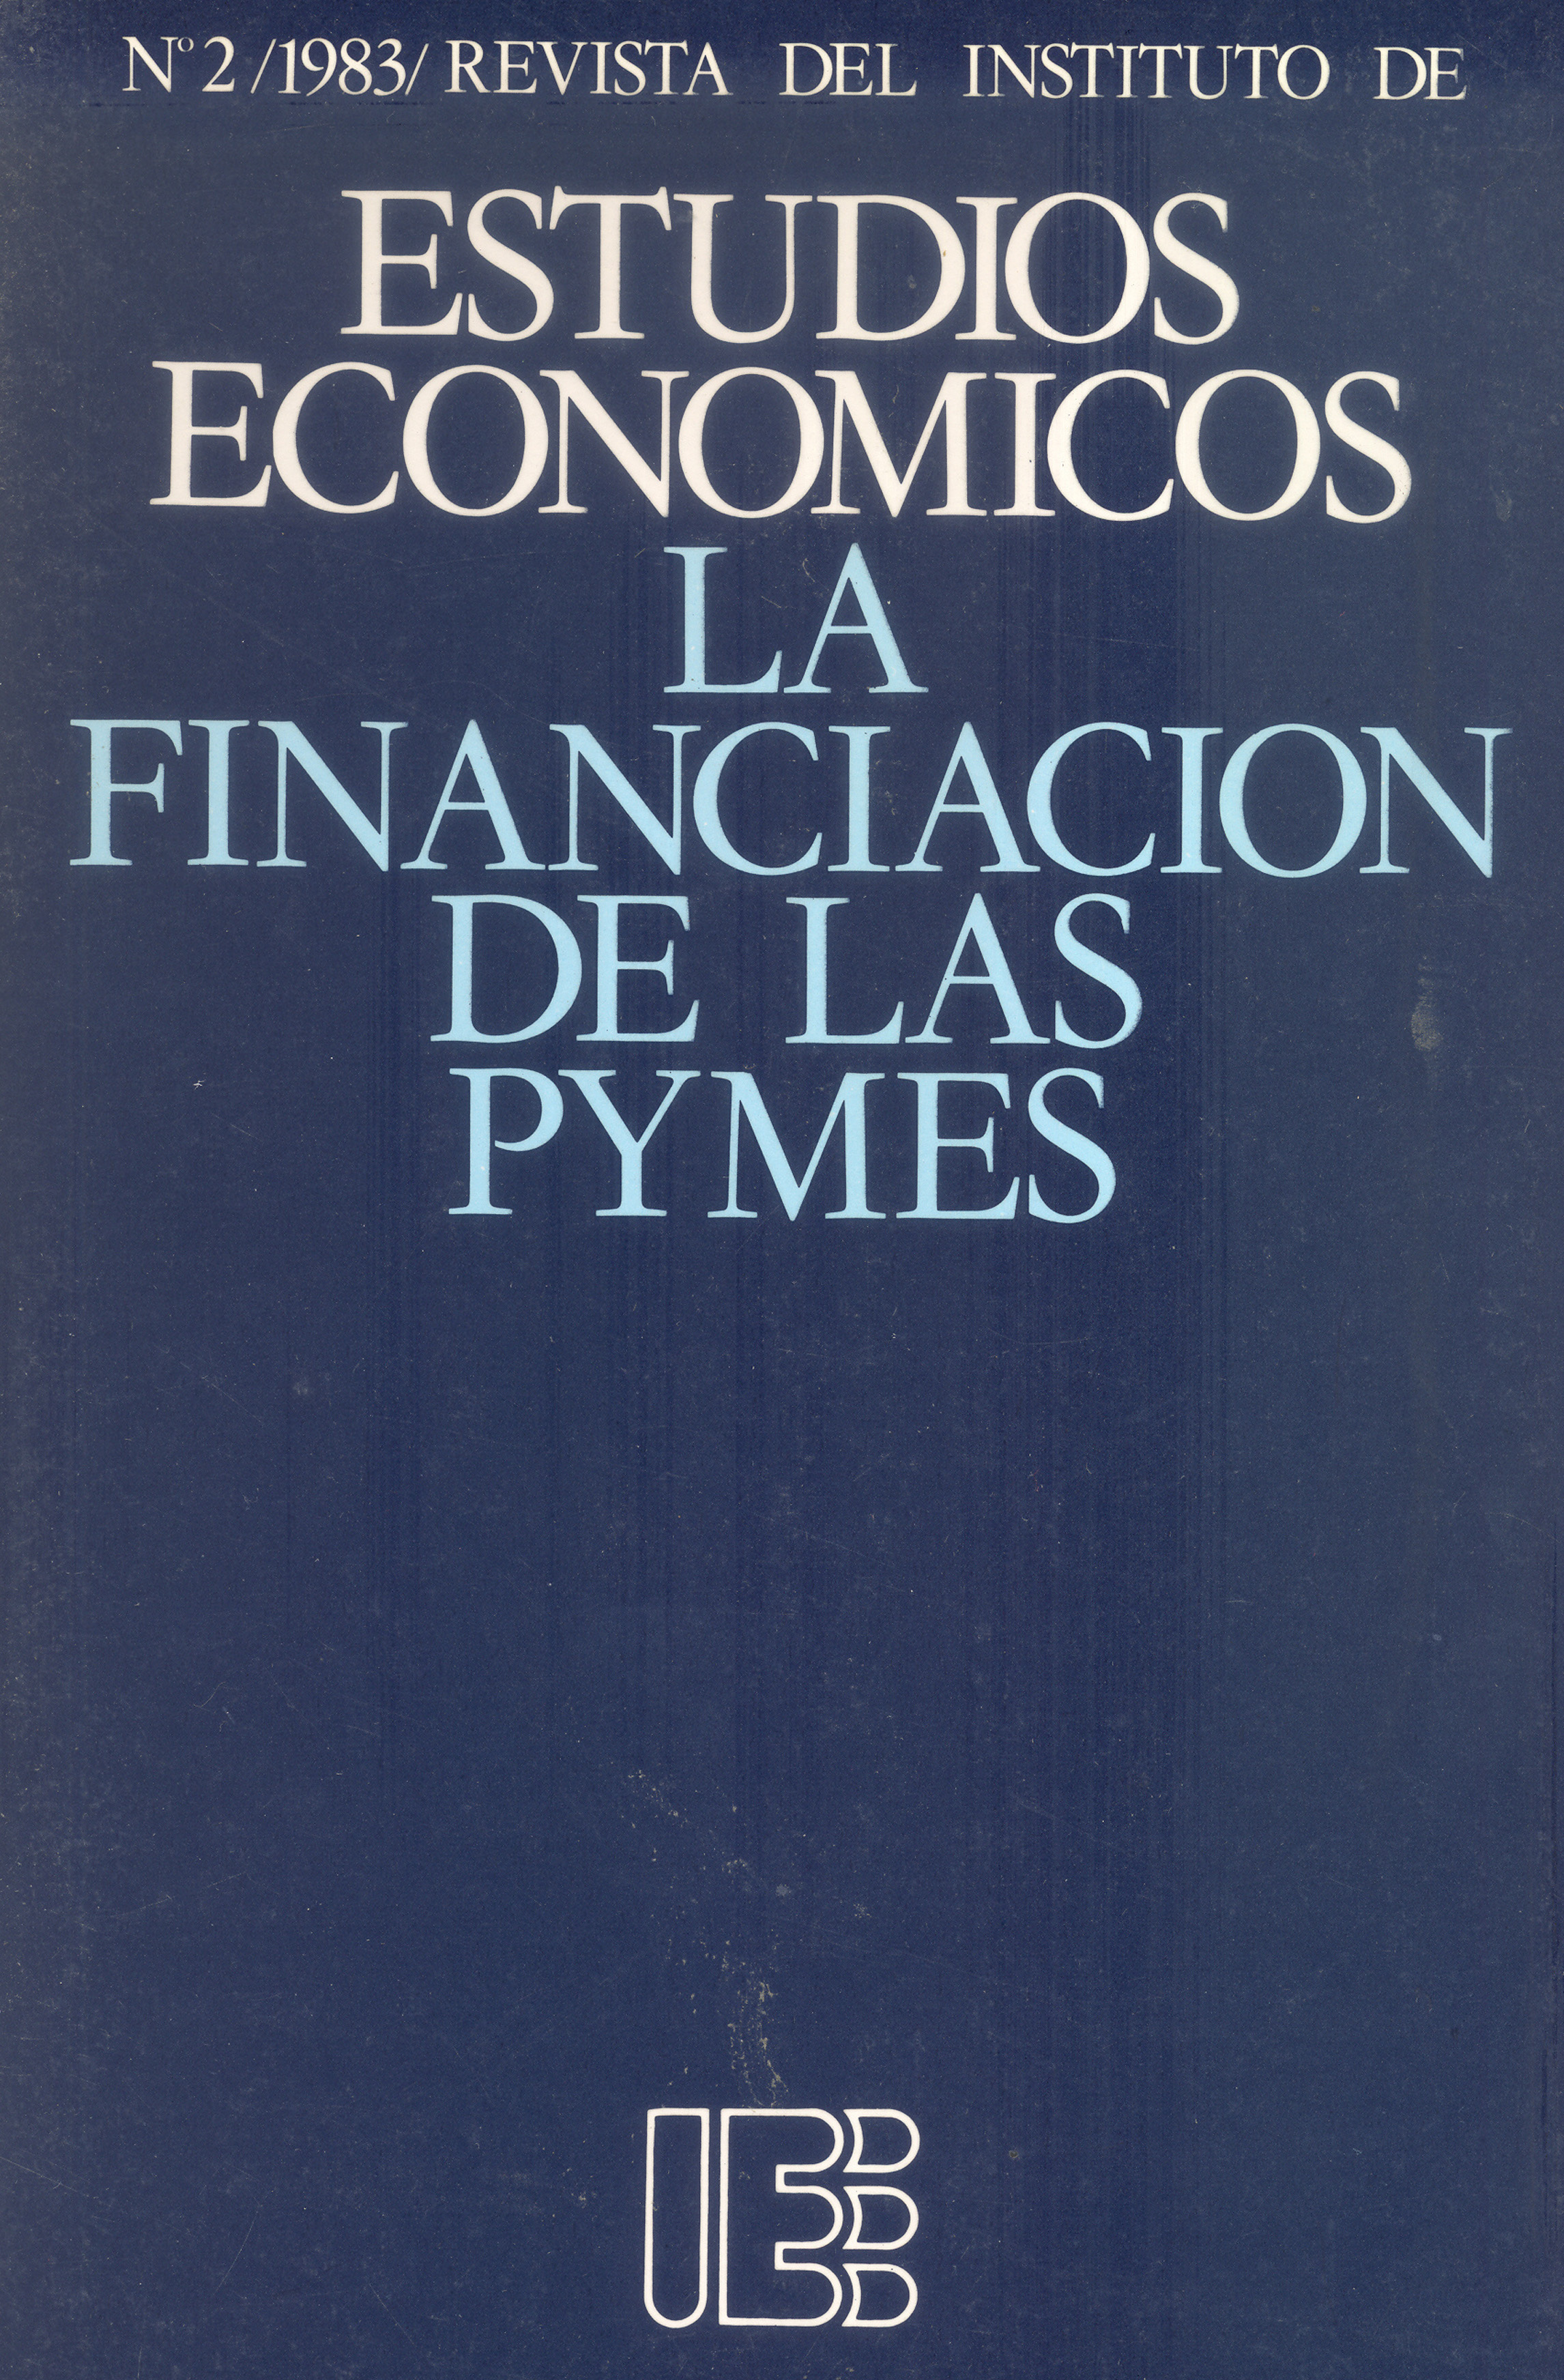 2_financiacion-pymes1983